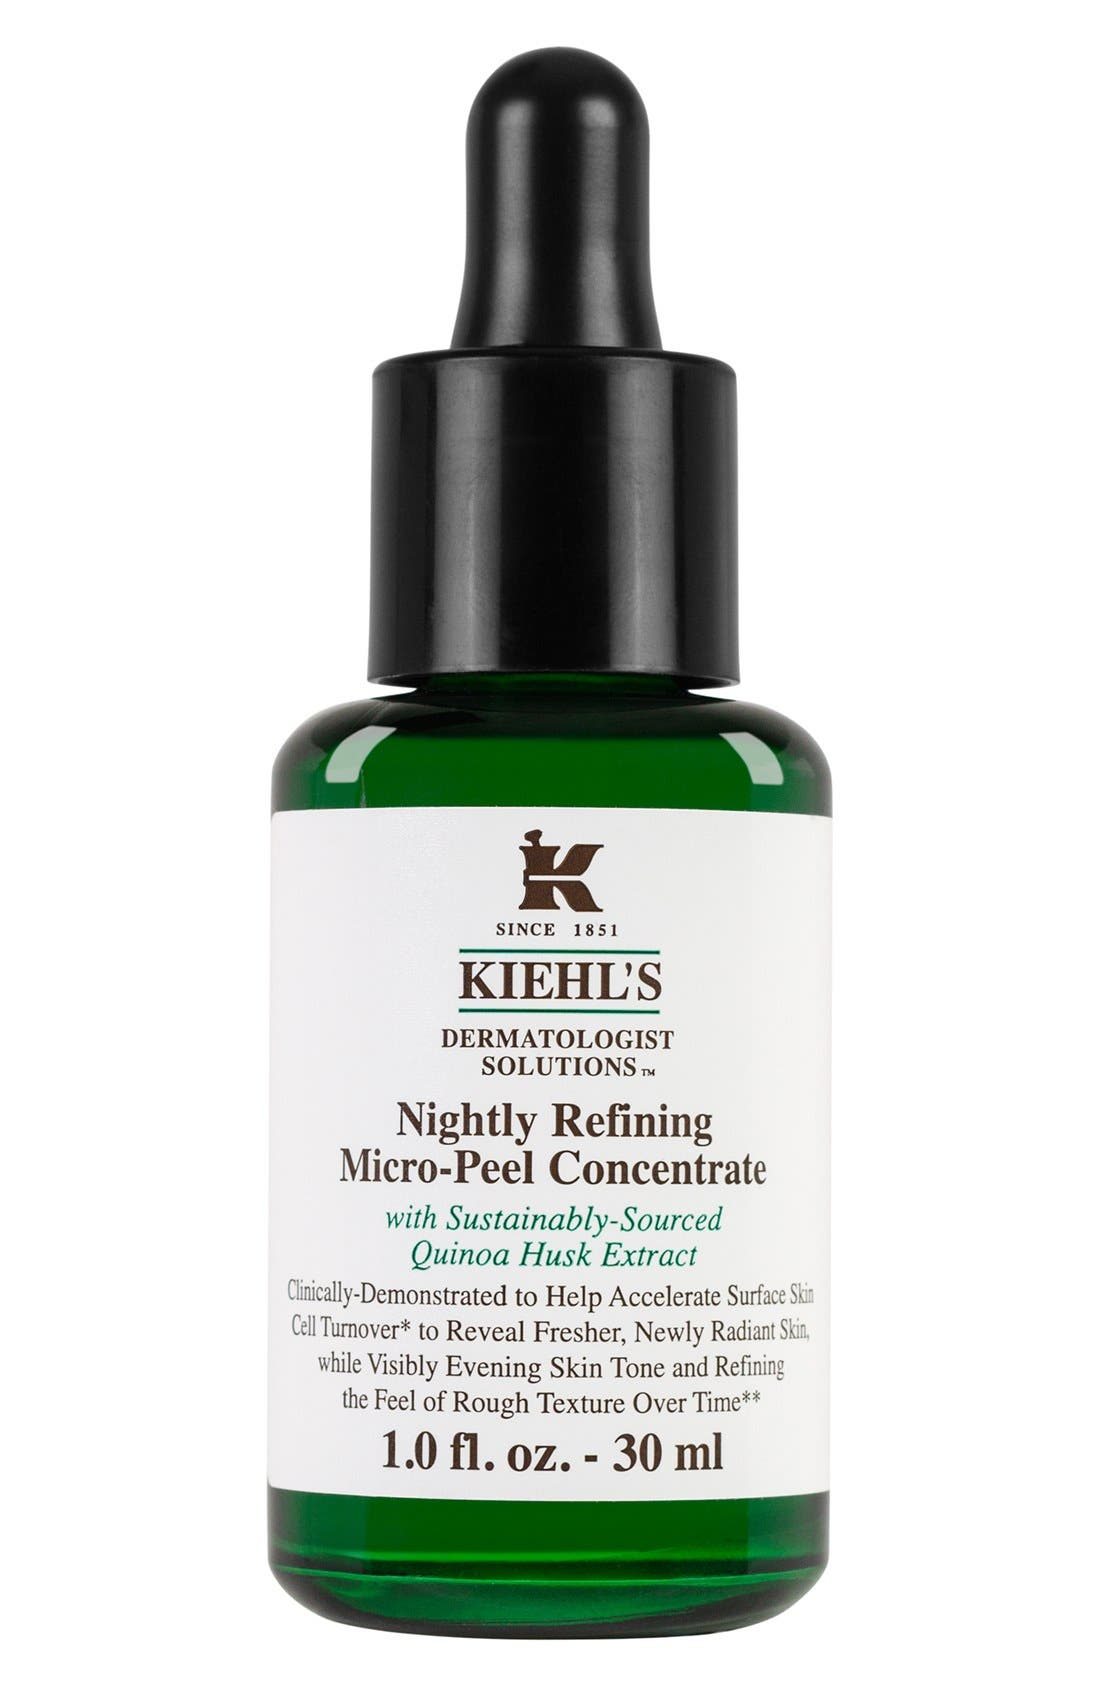 Kiehl's Since 1851 'Dermatologist Solutions™' Nightly Refining Micro-Peel Concentrate